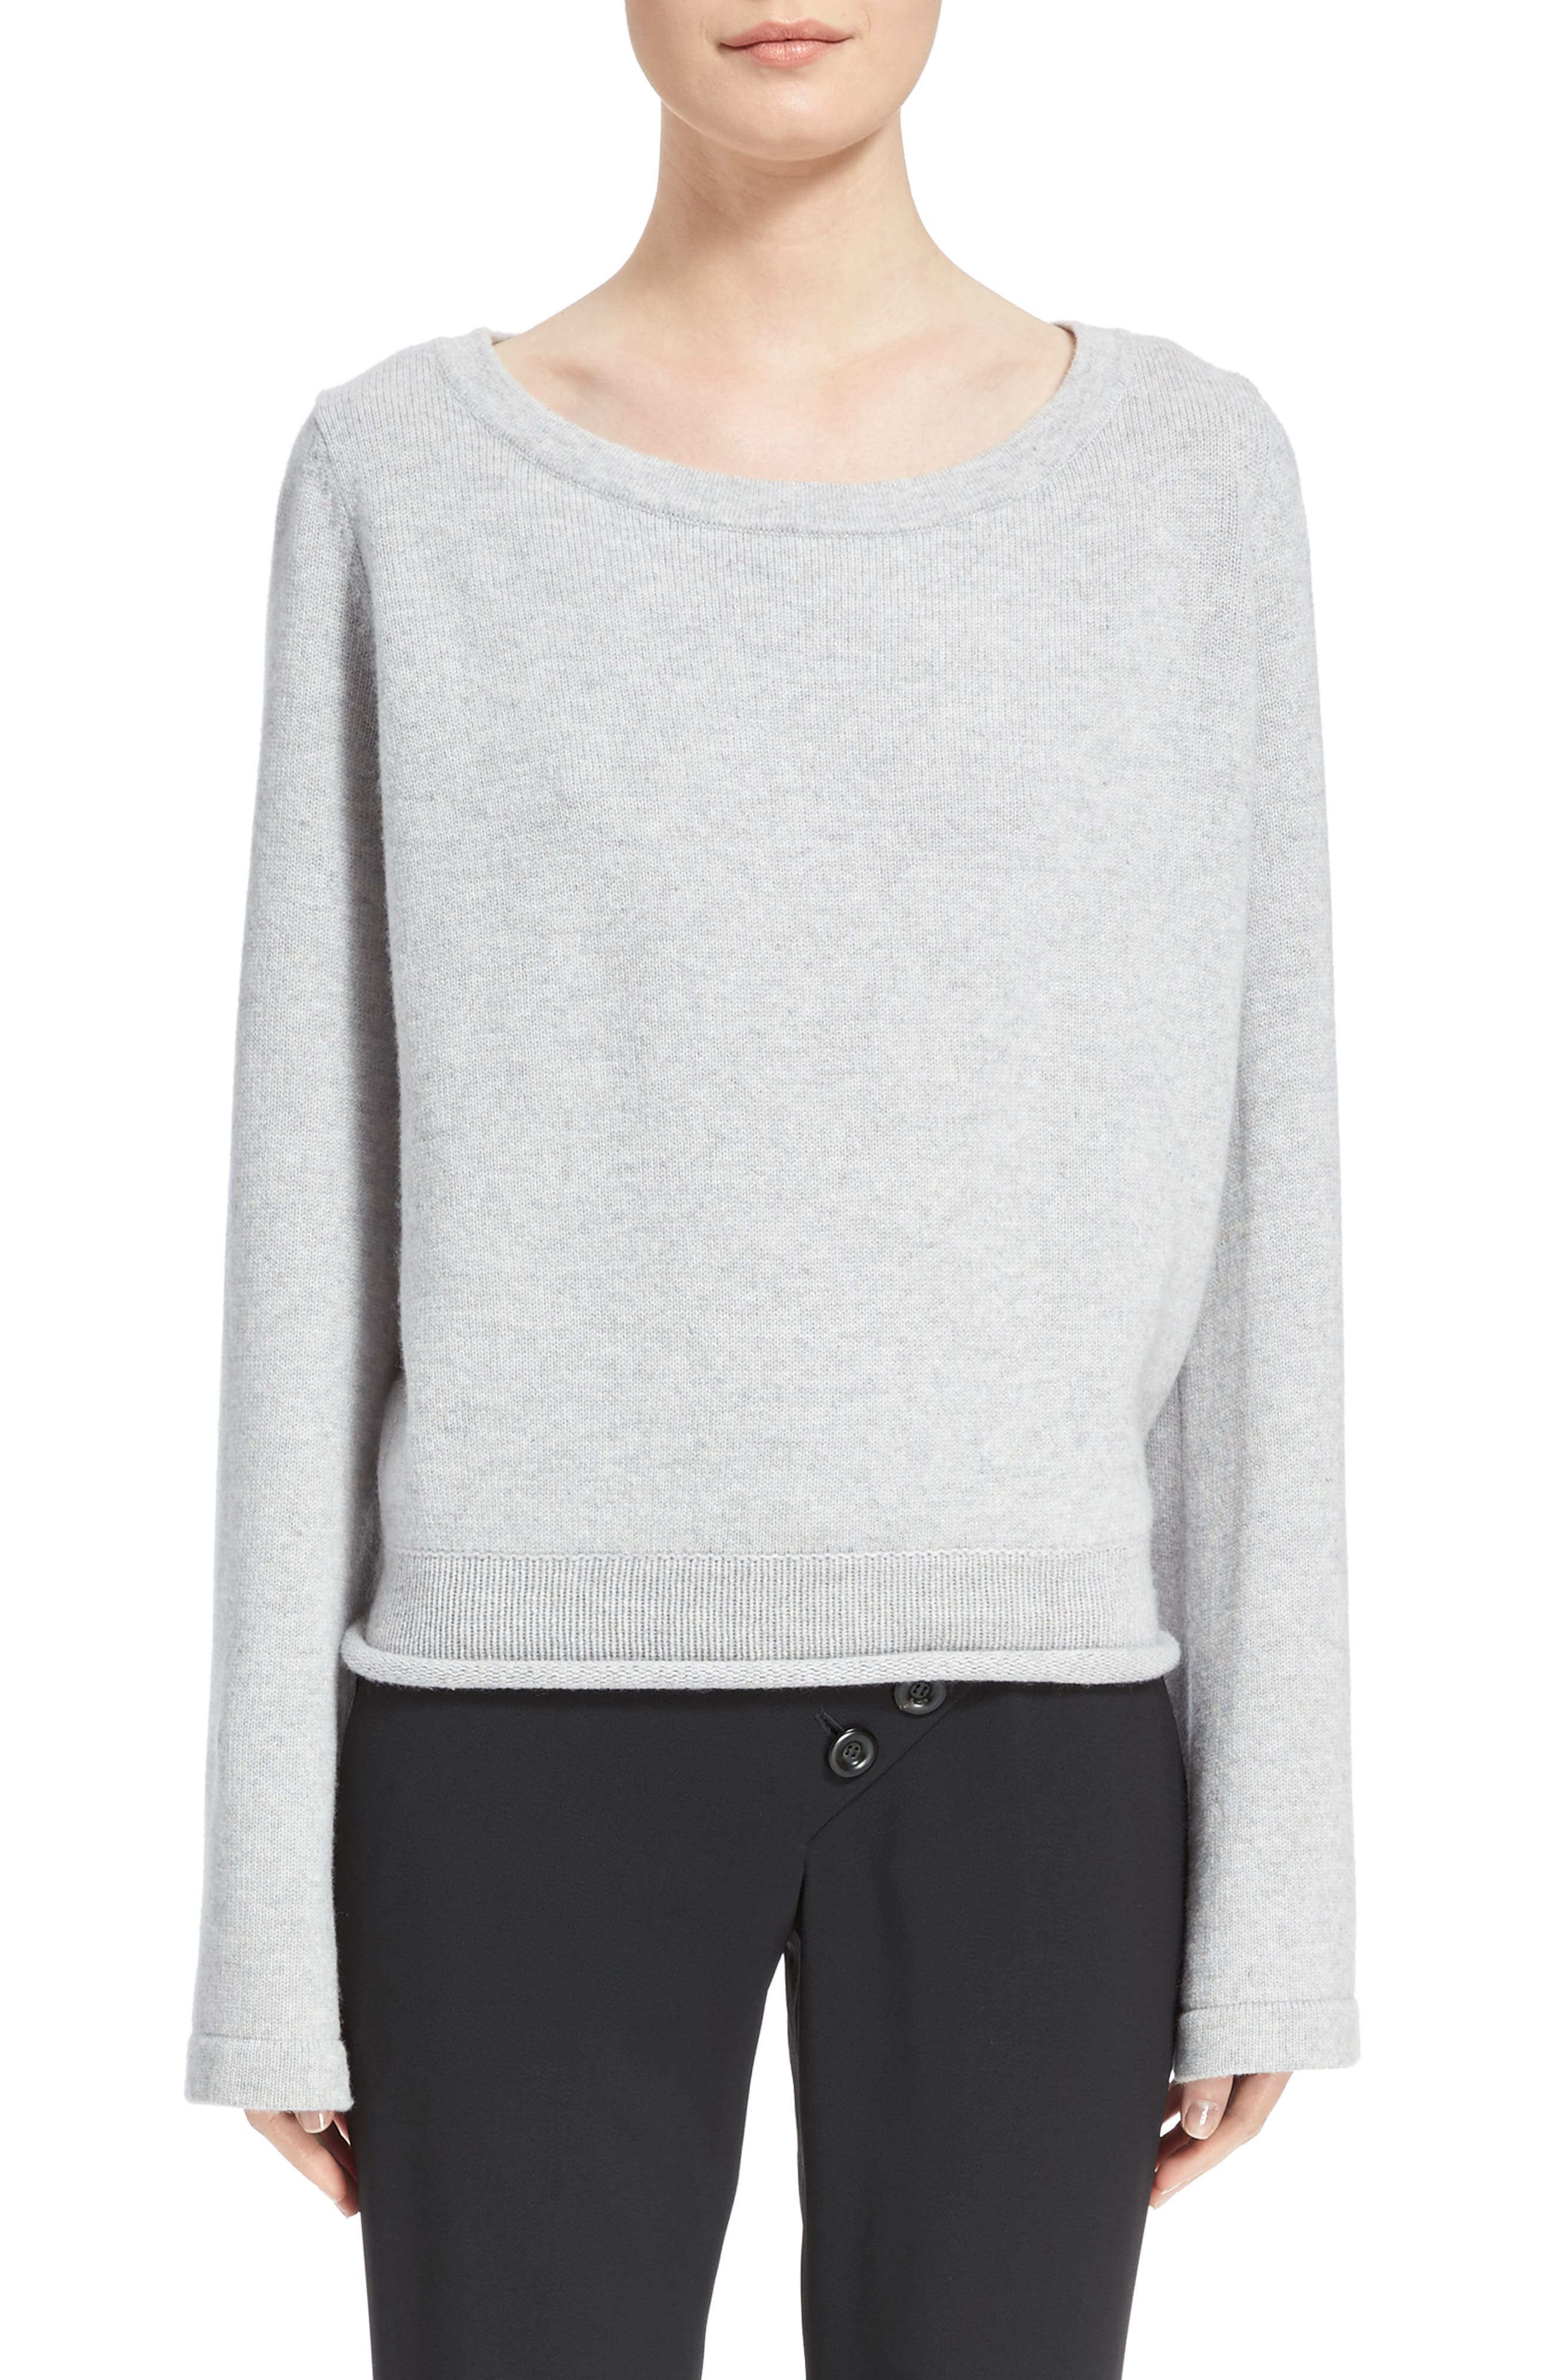 Iconic Cashmere Sweater,                         Main,                         color,